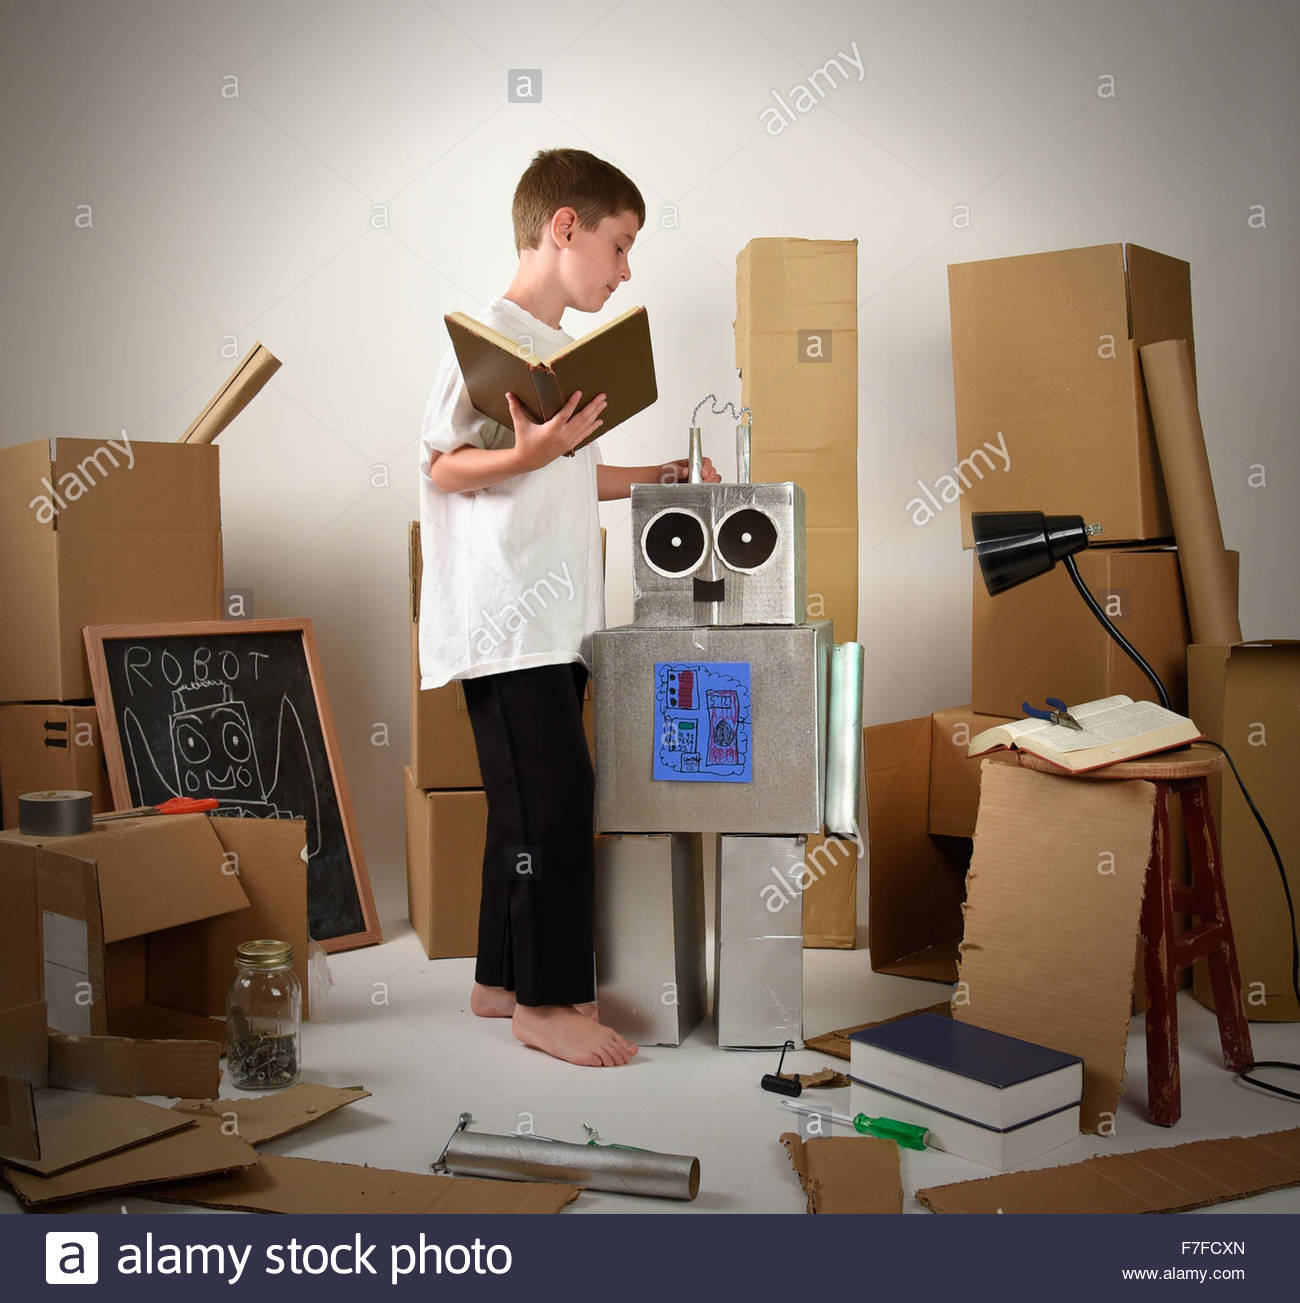 A child is reading a book and building a robot from cardboard boxes for an imagination, science or education concept - Stock Image